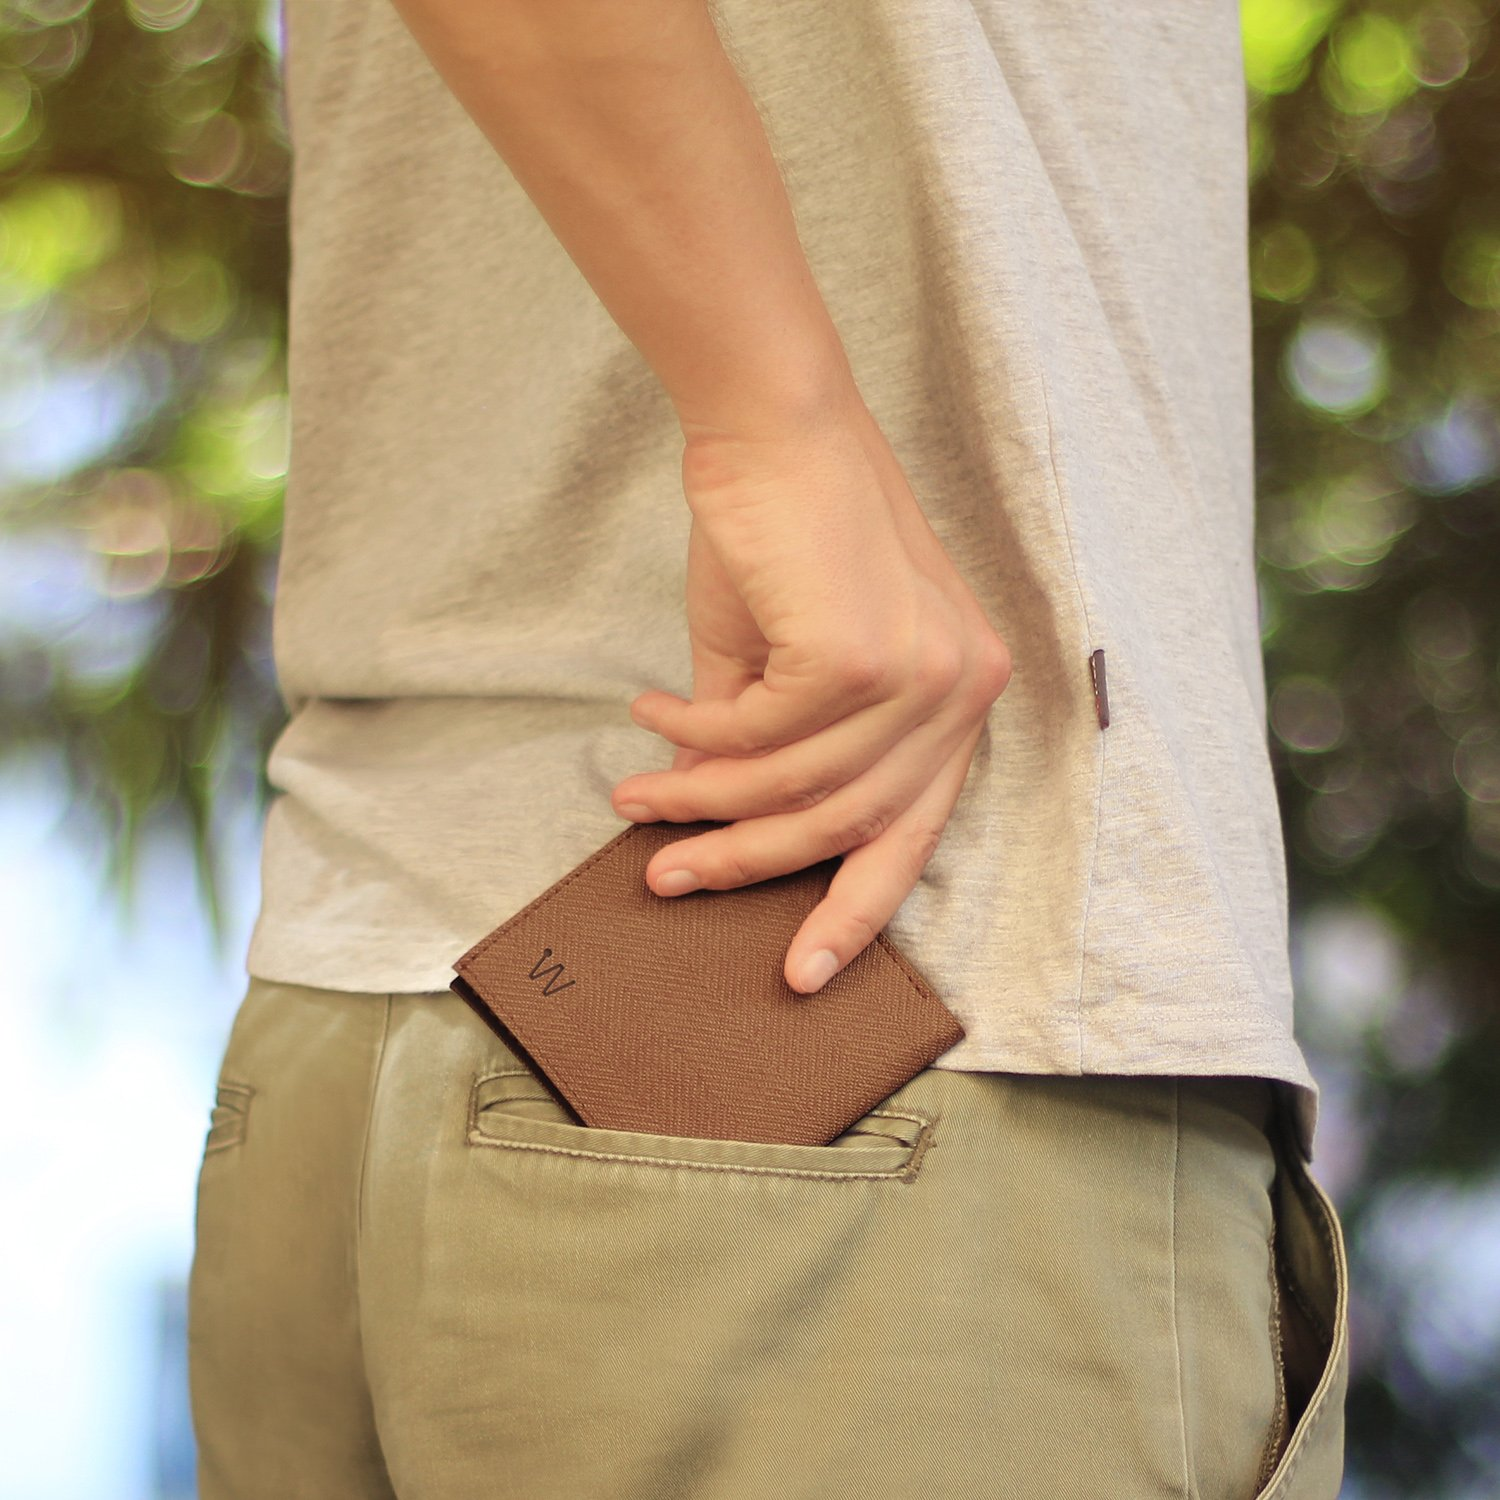 Man putting tweed smart wallet into the pocket of his pants